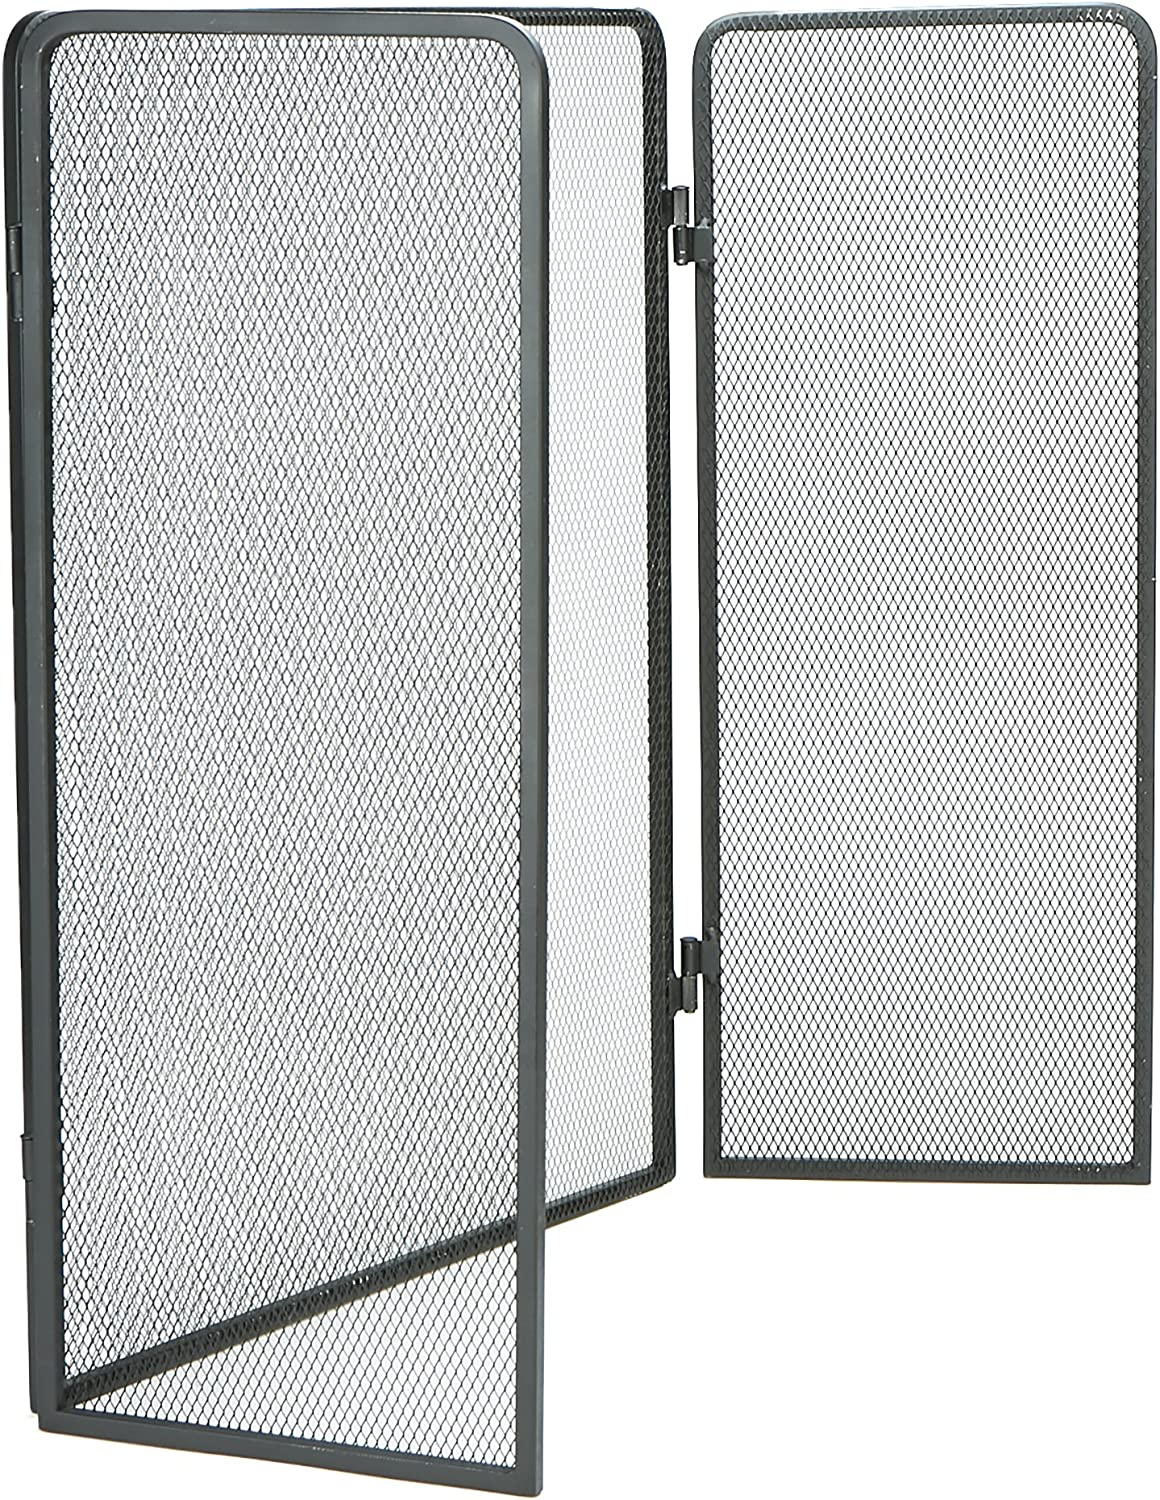 Mind Reader FIRESCREEN-BLK 3 Panel Fire Place Screen Door Panel with Double Bar Black Finish, Black